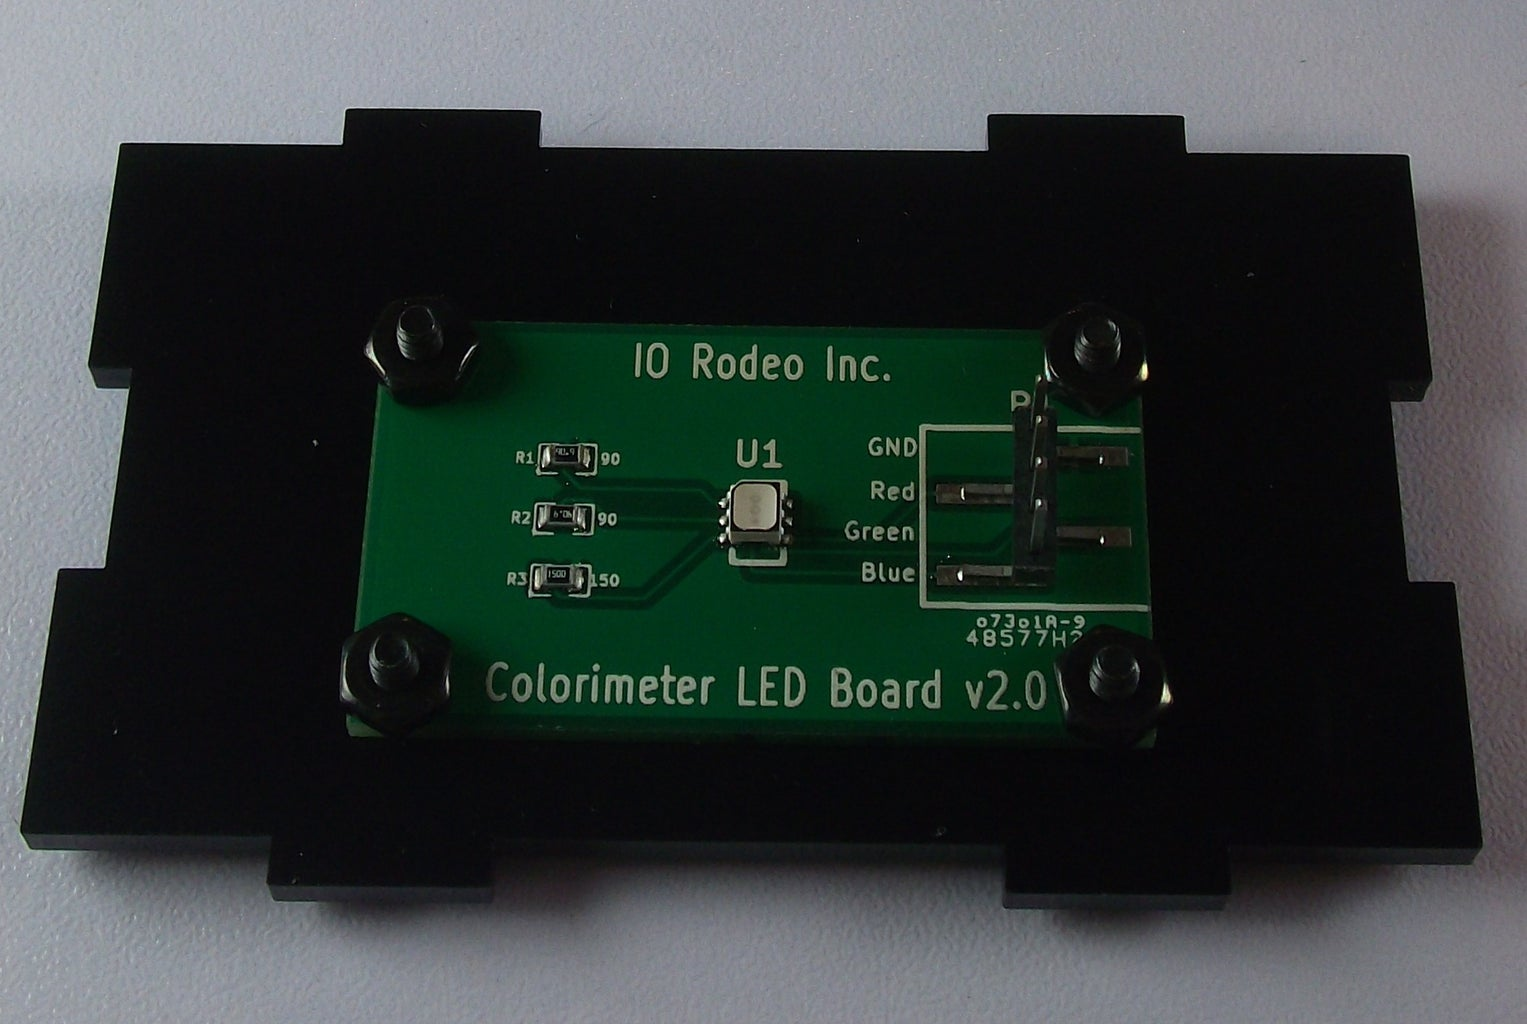 Mount and Connect the Colorimeter Sensor and LED Boards